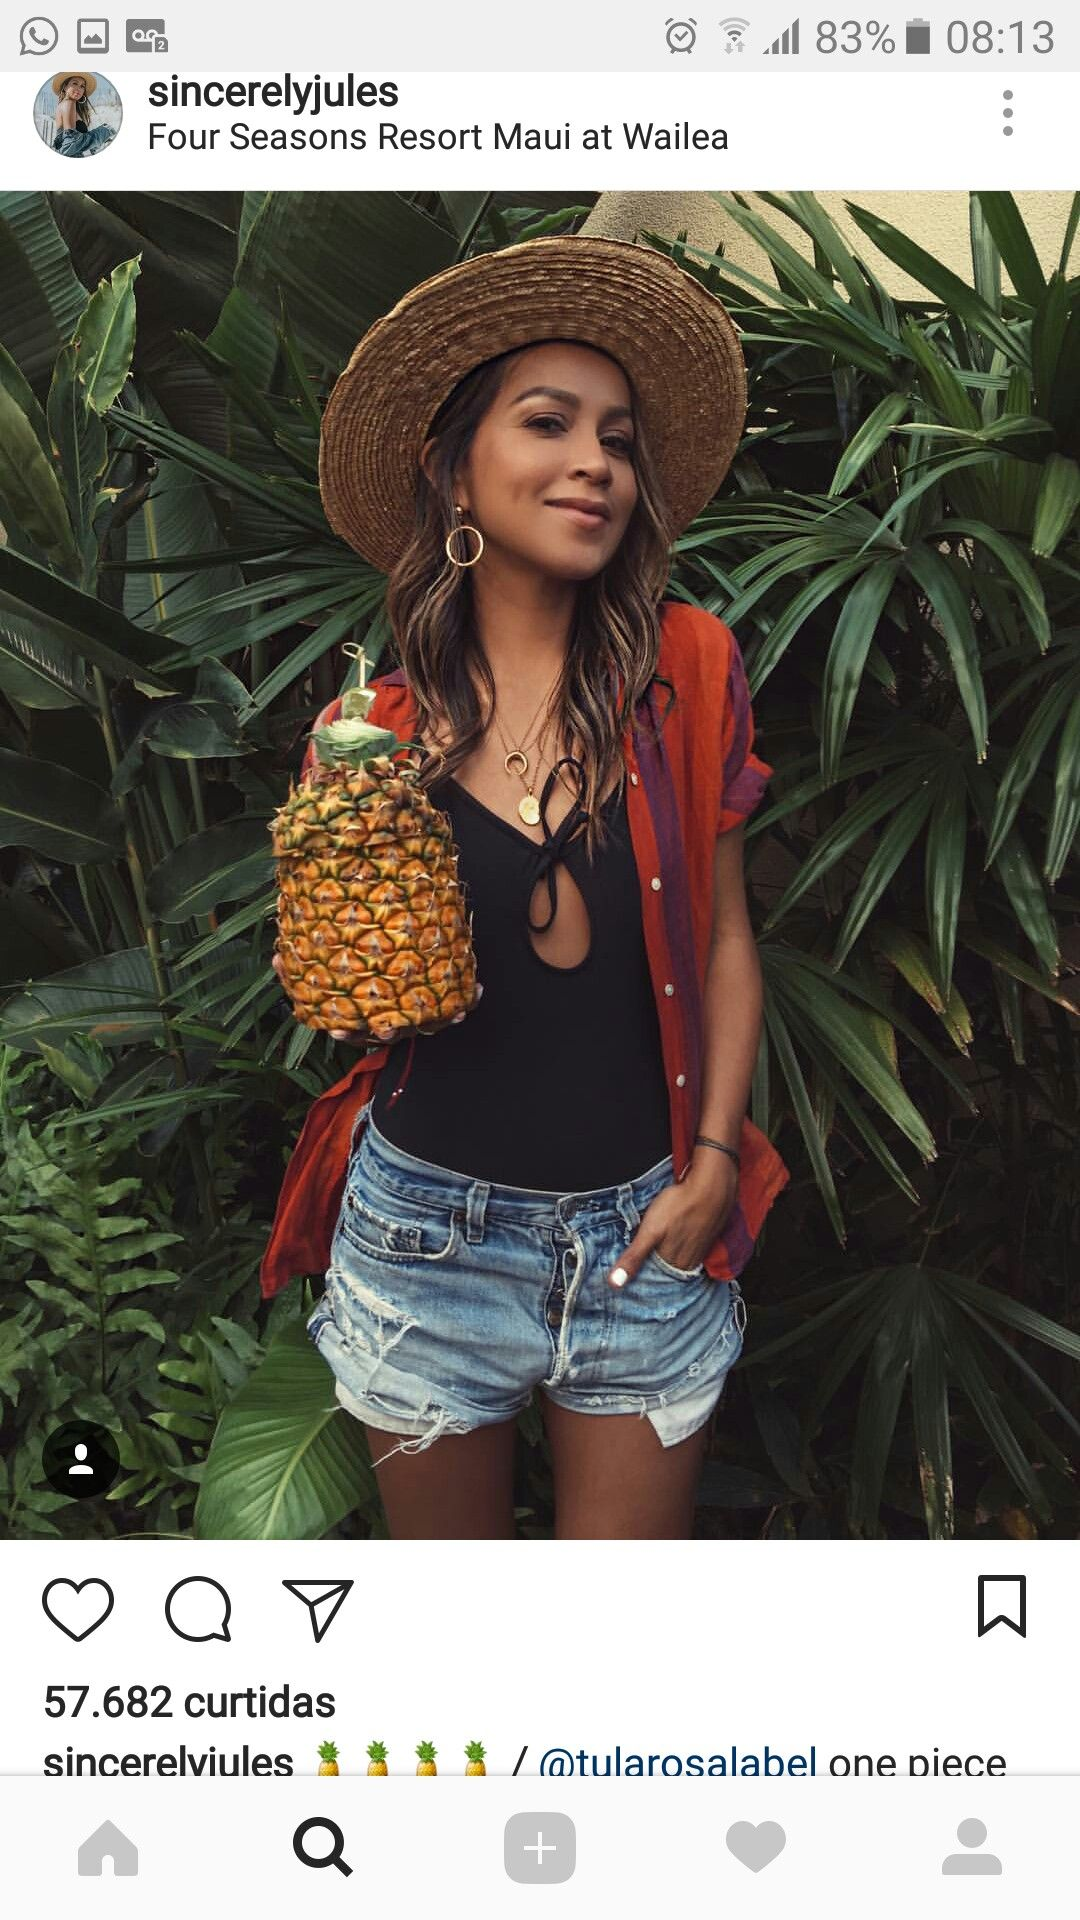 Pin by Tassiana Coutinho on Sincerely Jules   Pinterest   Sincerely jules 43d4dca4c5a9